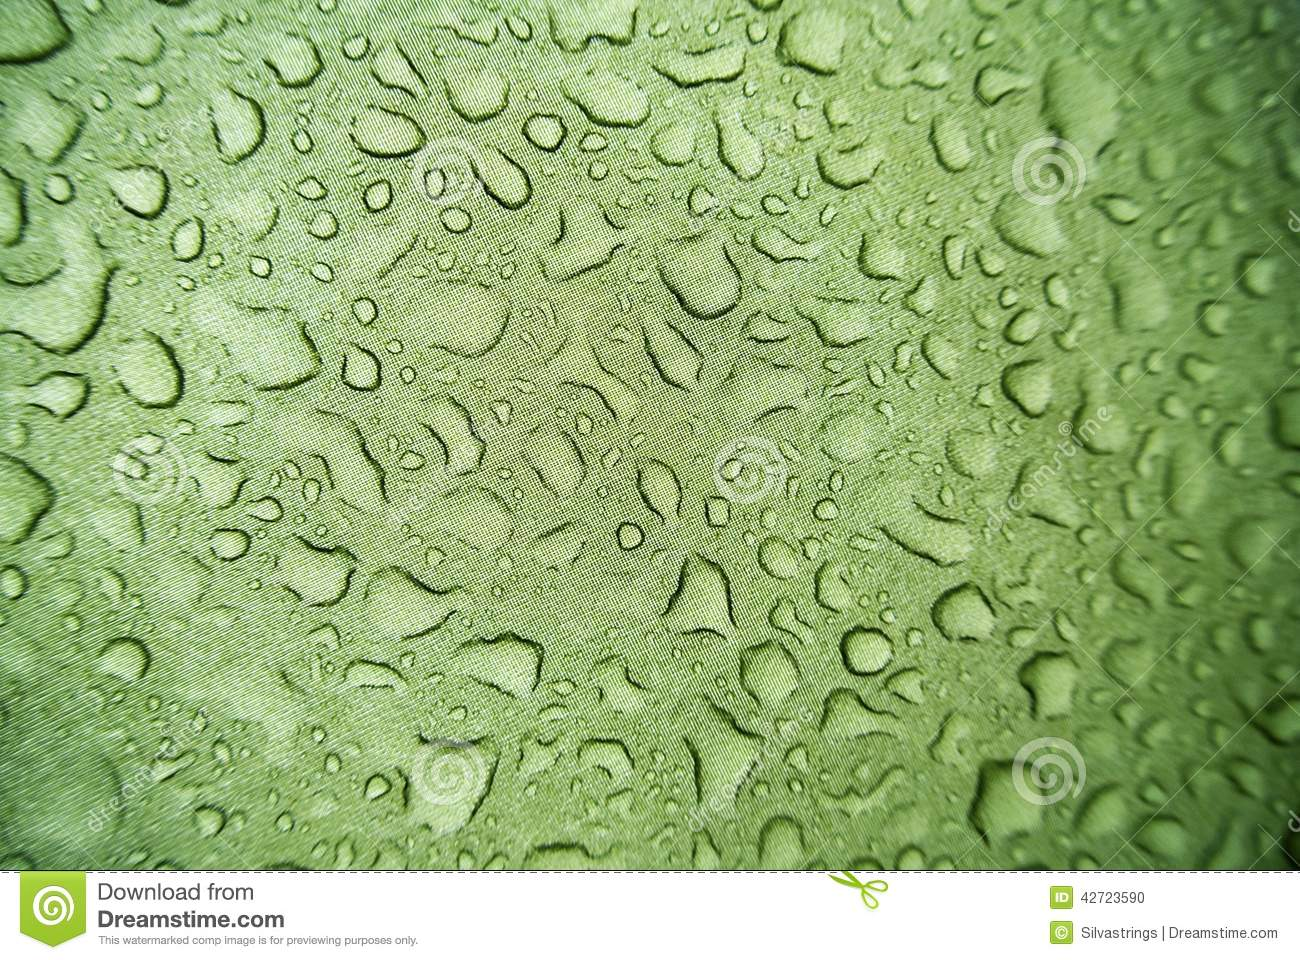 Water droplets on canvas